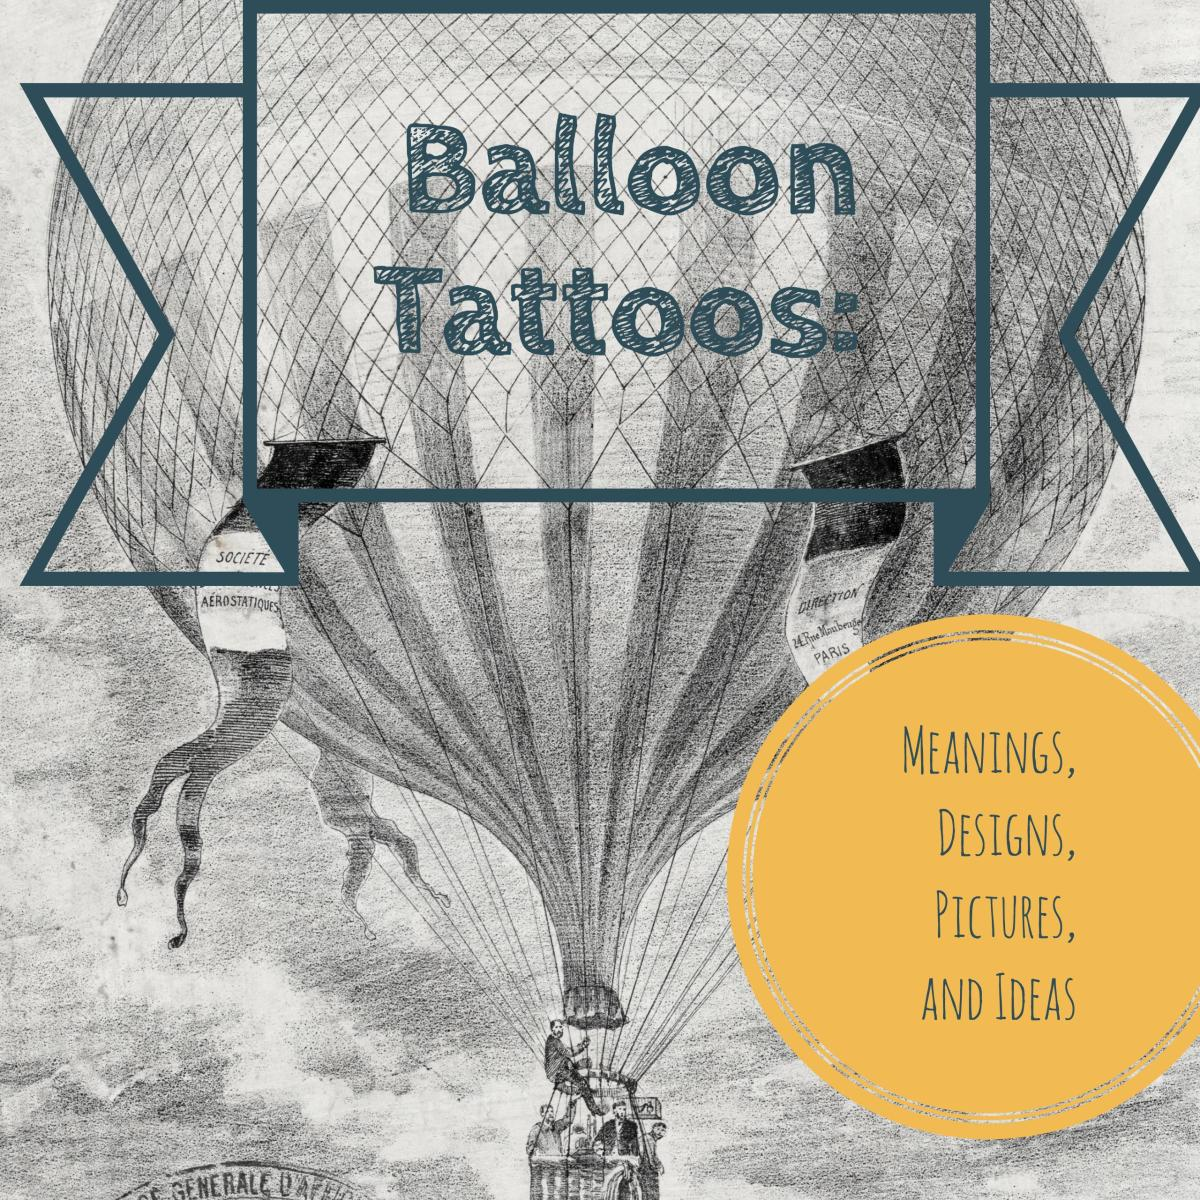 Balloon Tattoos: Meanings, Designs, Pictures, and Ideas